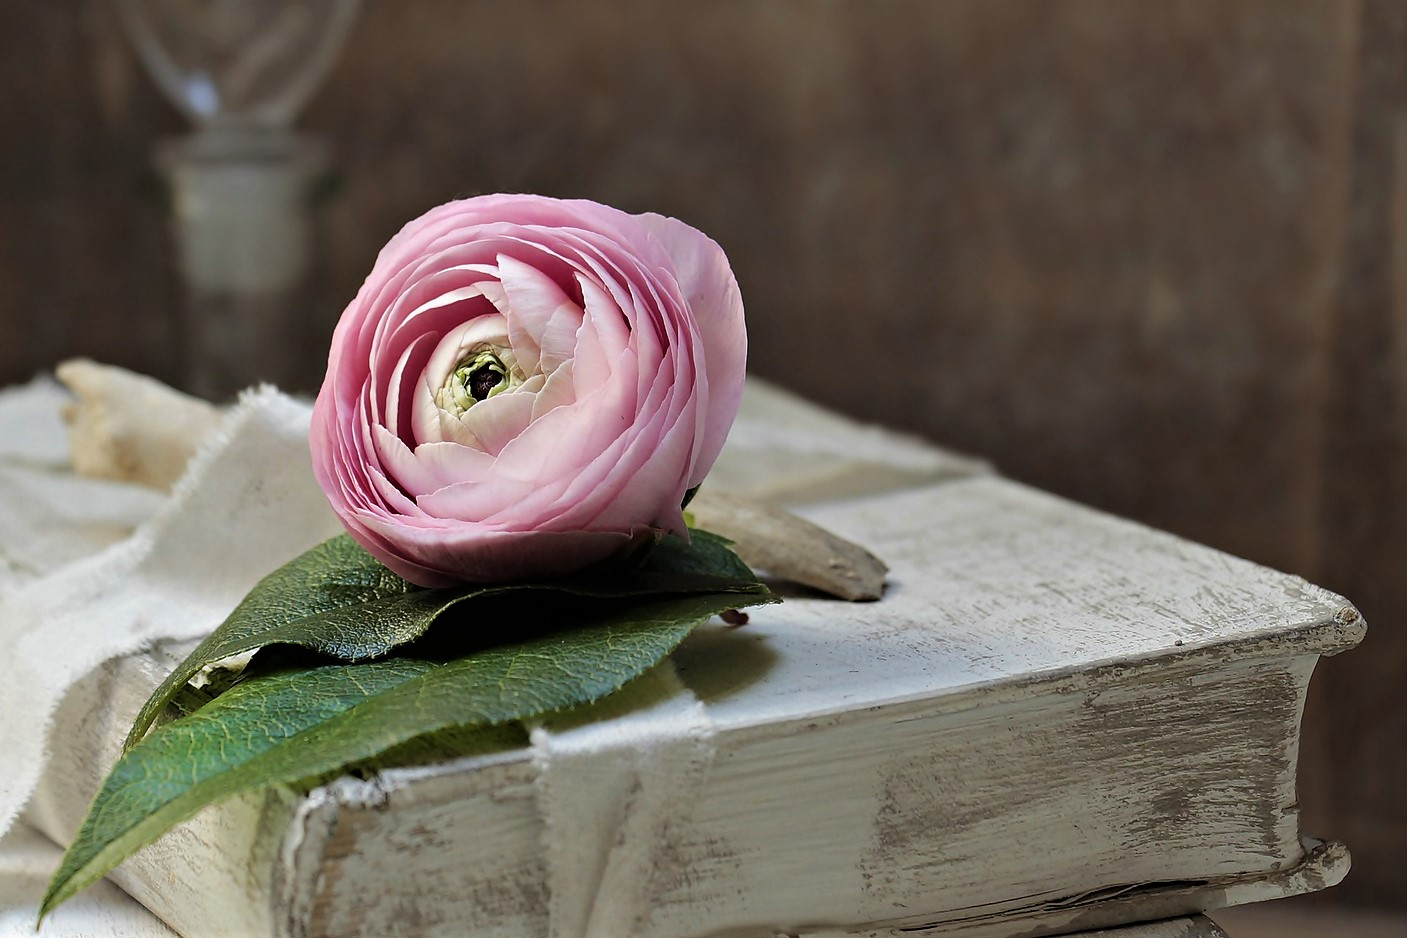 Pink flower on a book